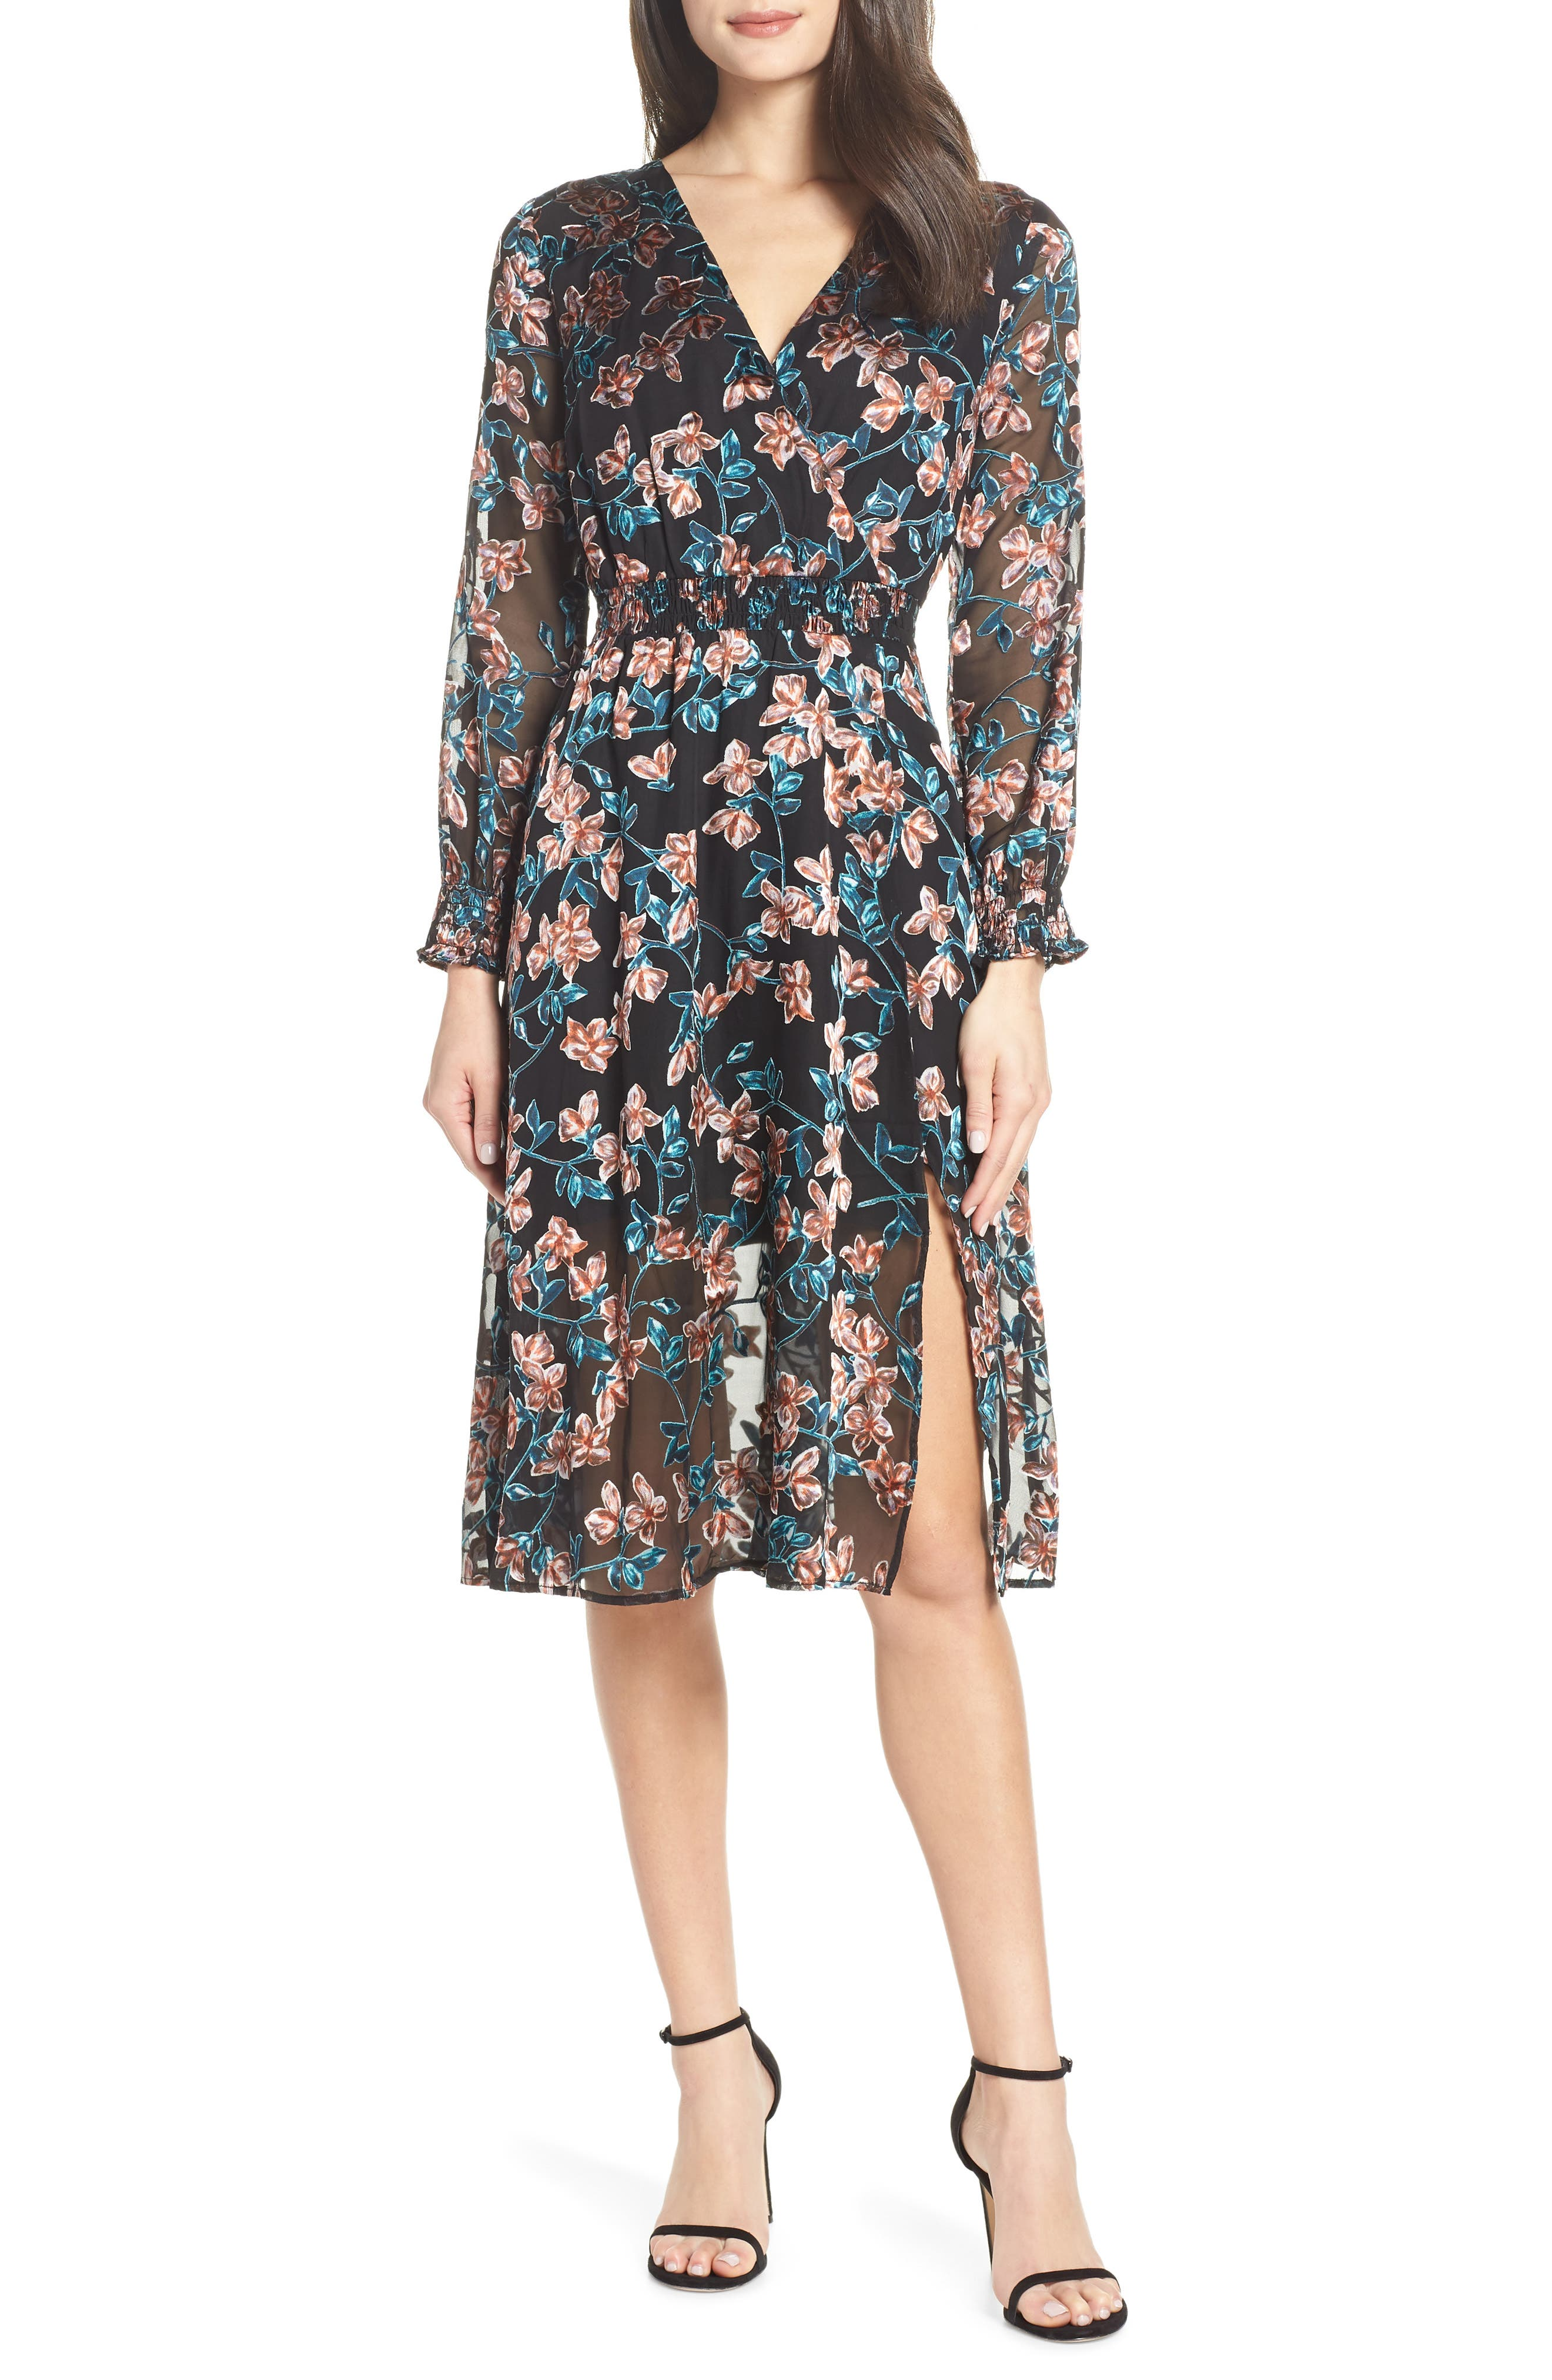 ALI & JAY, Treat Me Like a Lady Floral Dress, Main thumbnail 1, color, 001